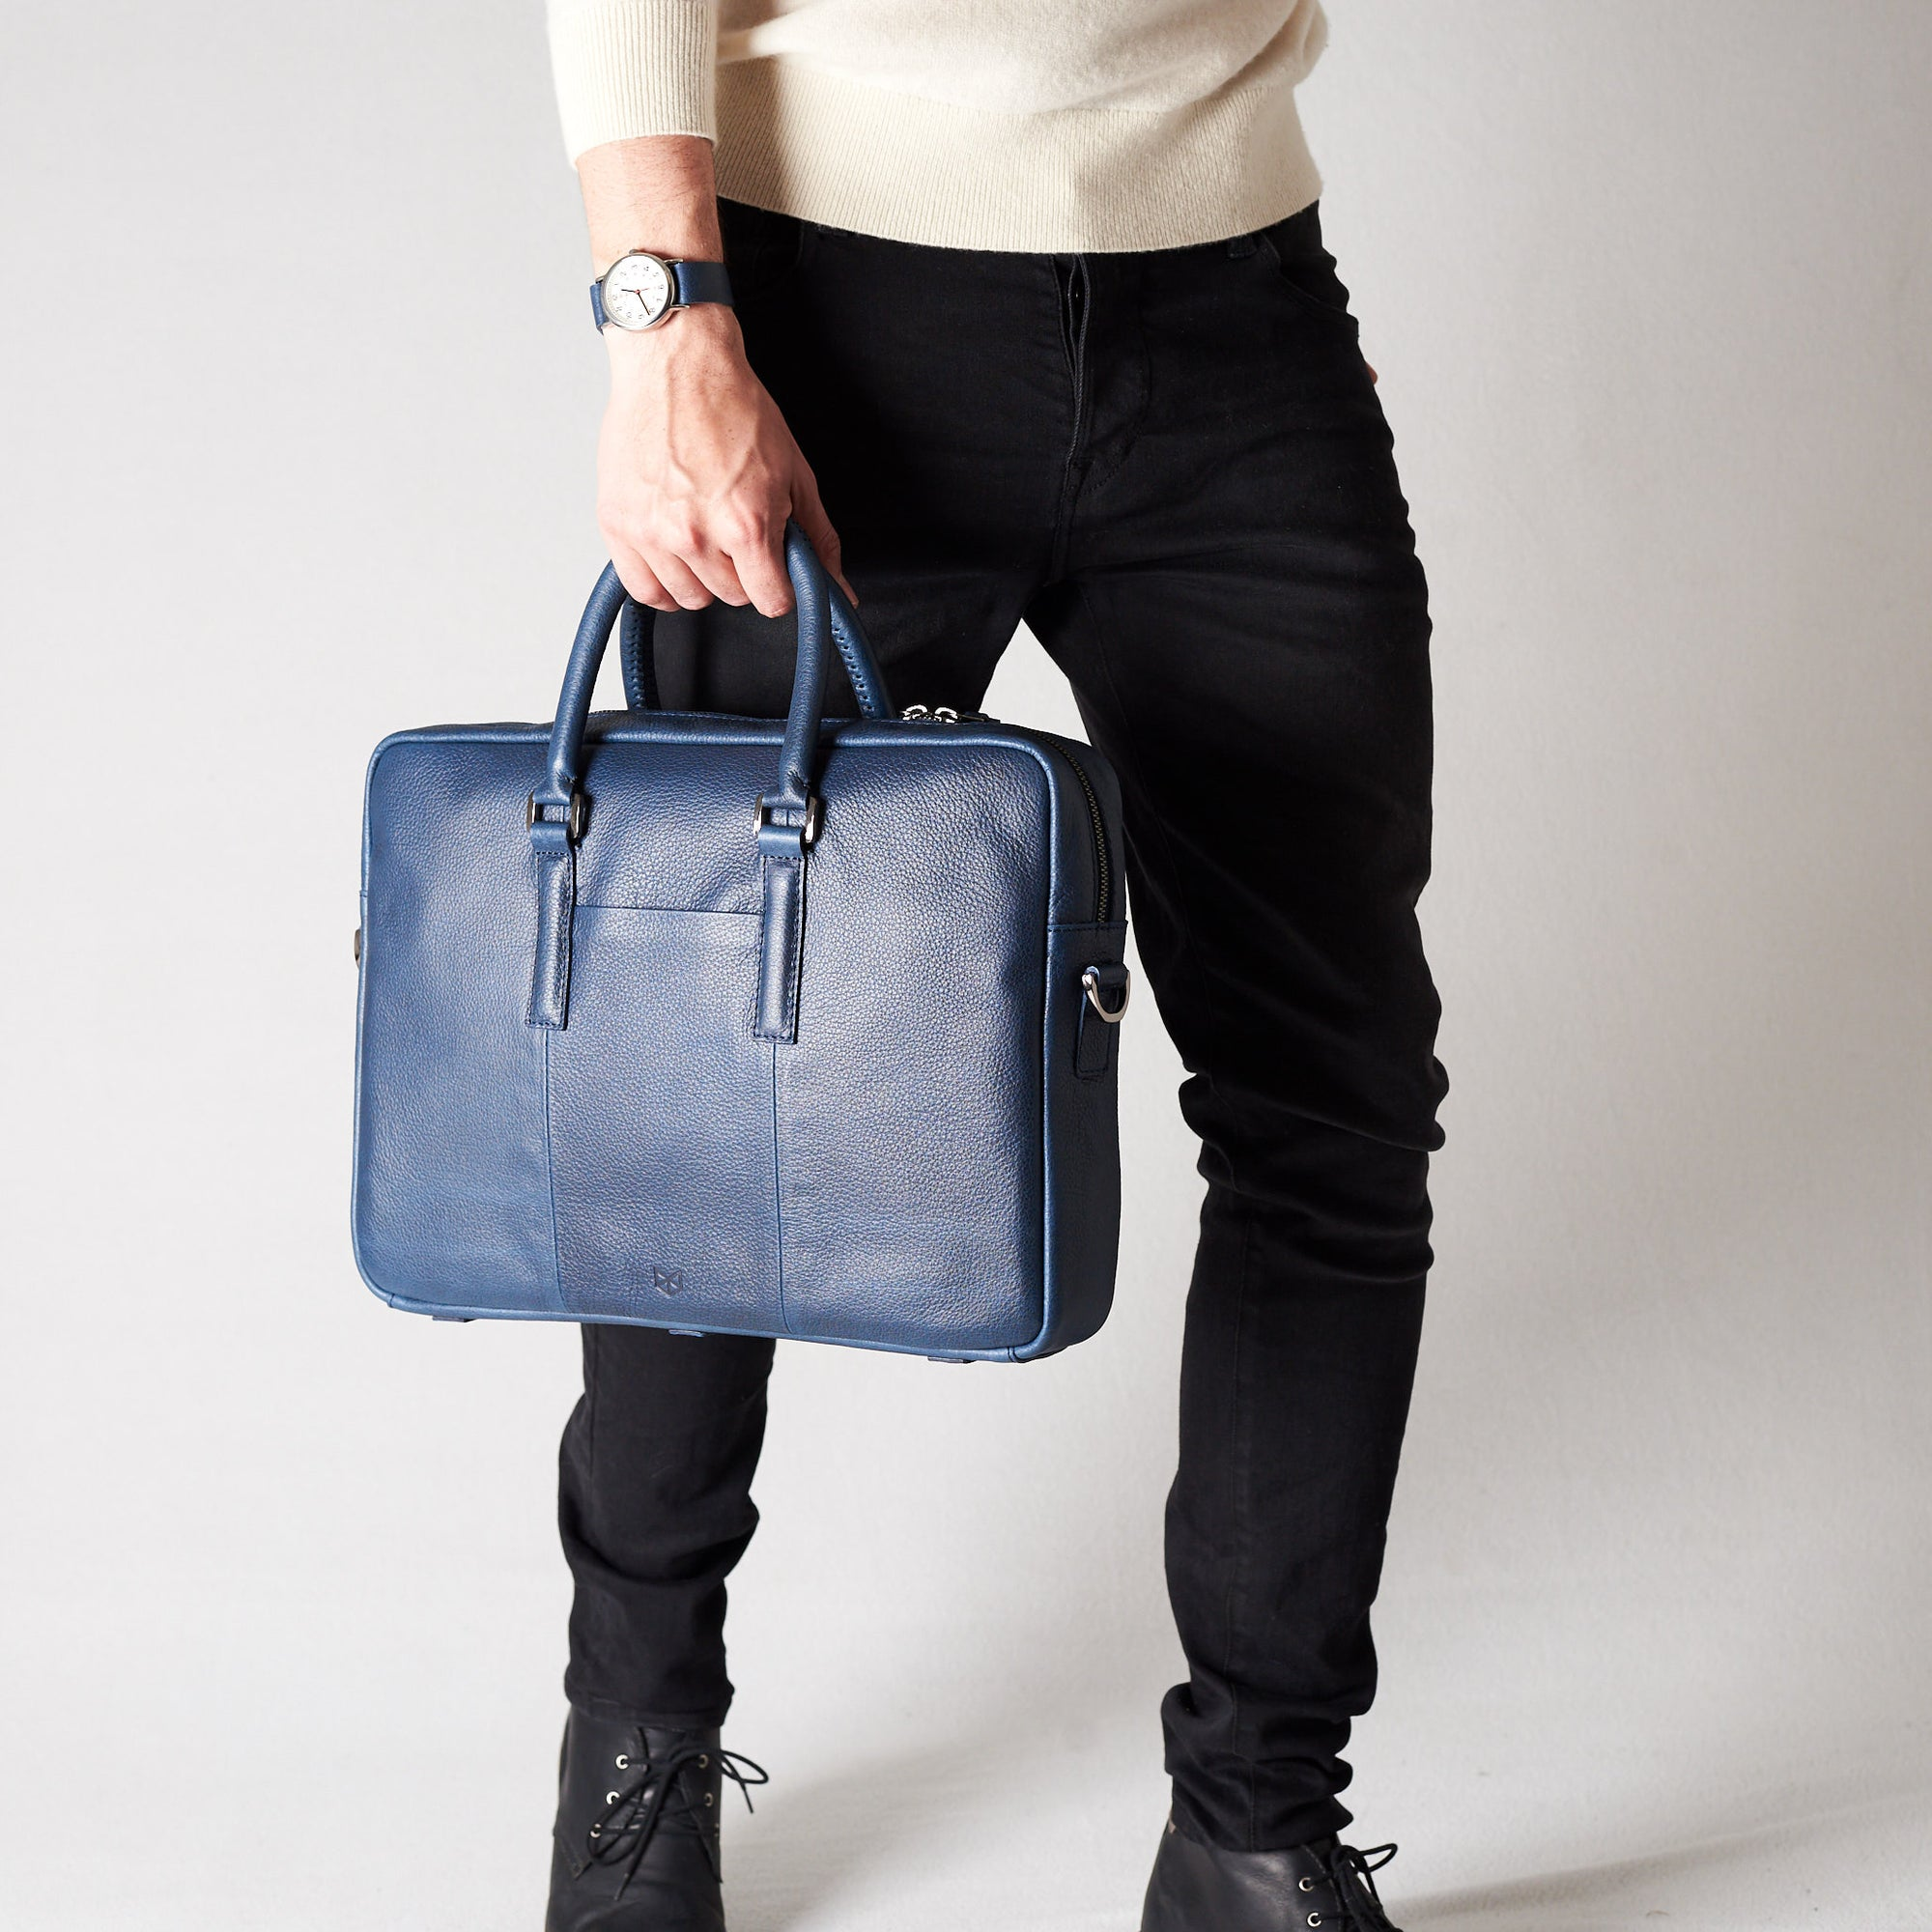 Frontal view attache case .Blue leather briefcase laptop bag for men. Gazeli laptop briefcase by Capra Leather.